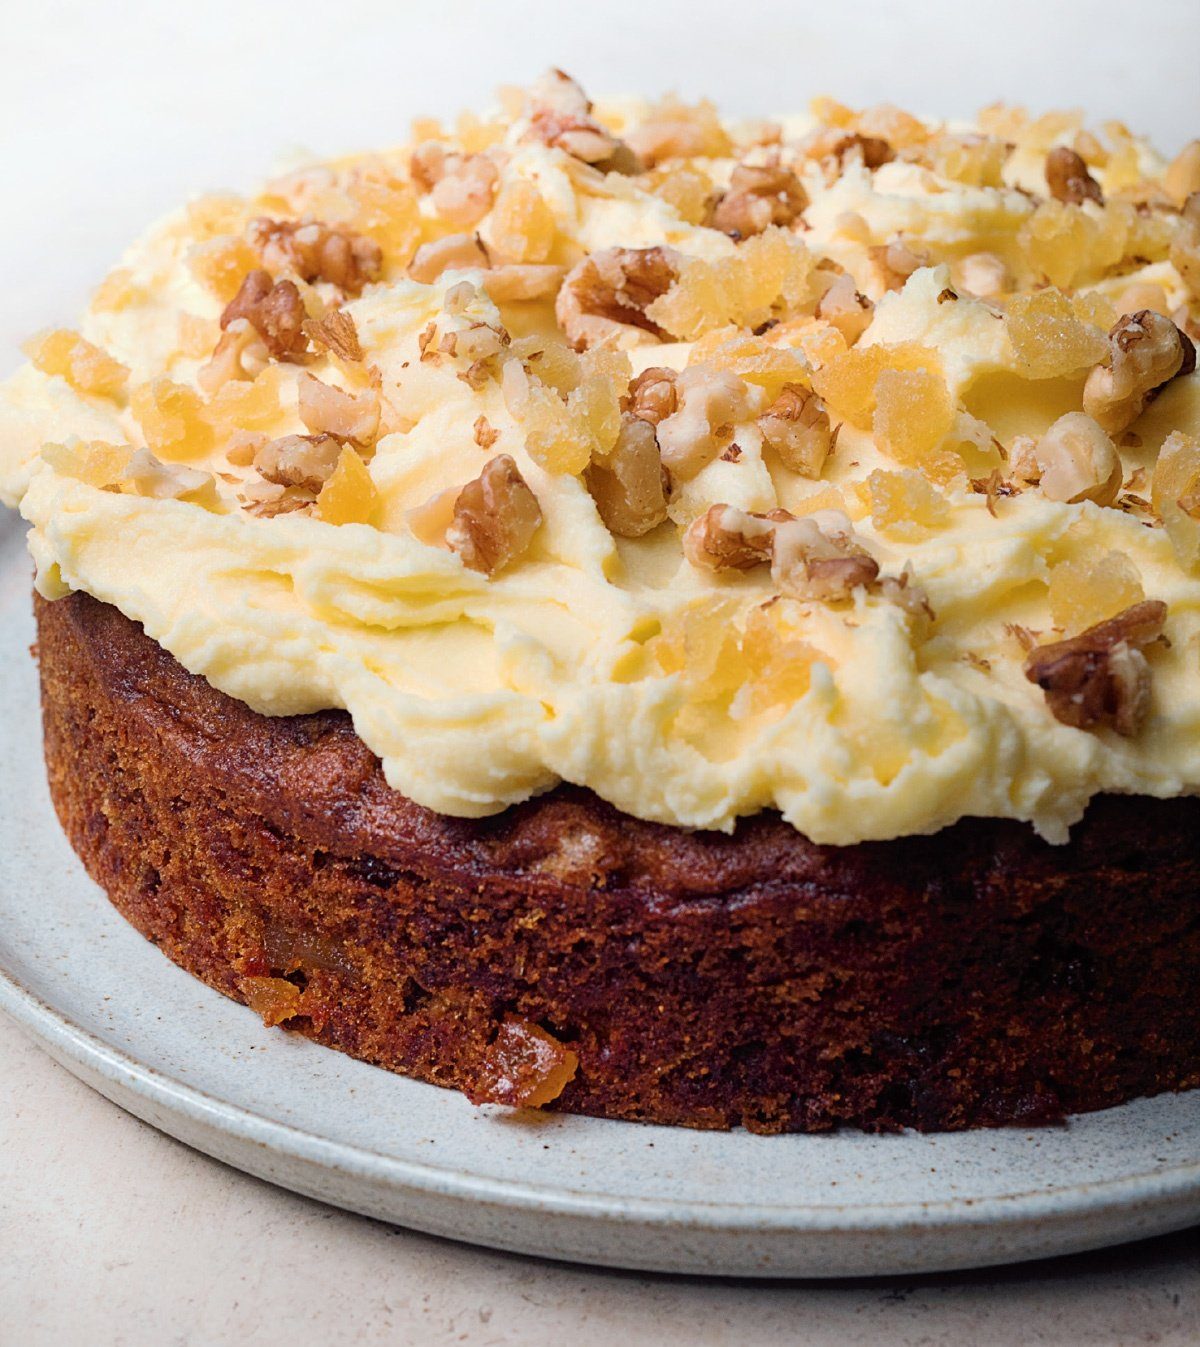 Image of Nigella's Ginger and Walnut Carrot Cake